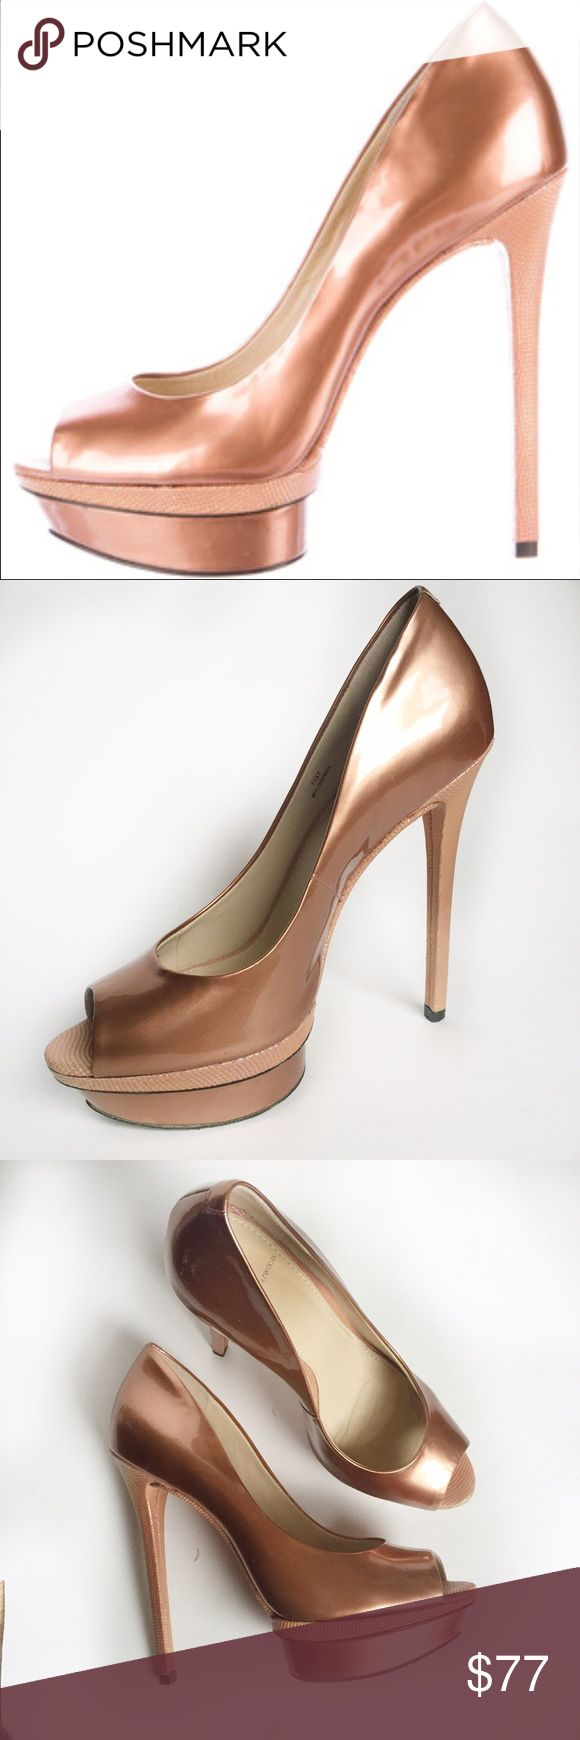 Brian Atwood  metallic pumps Condition: used without box Size: 7  Color: rose gold metallic  Brand: Brian Atwood ..   Tags for search : heels, pumps, pink pumps, rose metallic heels, rose metallic pumps, Brian Atwood metallic pumps heels, Brian Atwood pumps, Brian Atwood heels, Brian Atwood shoes, rose gold pumps, rose metallic pumps Brian Atwood Shoes Platforms